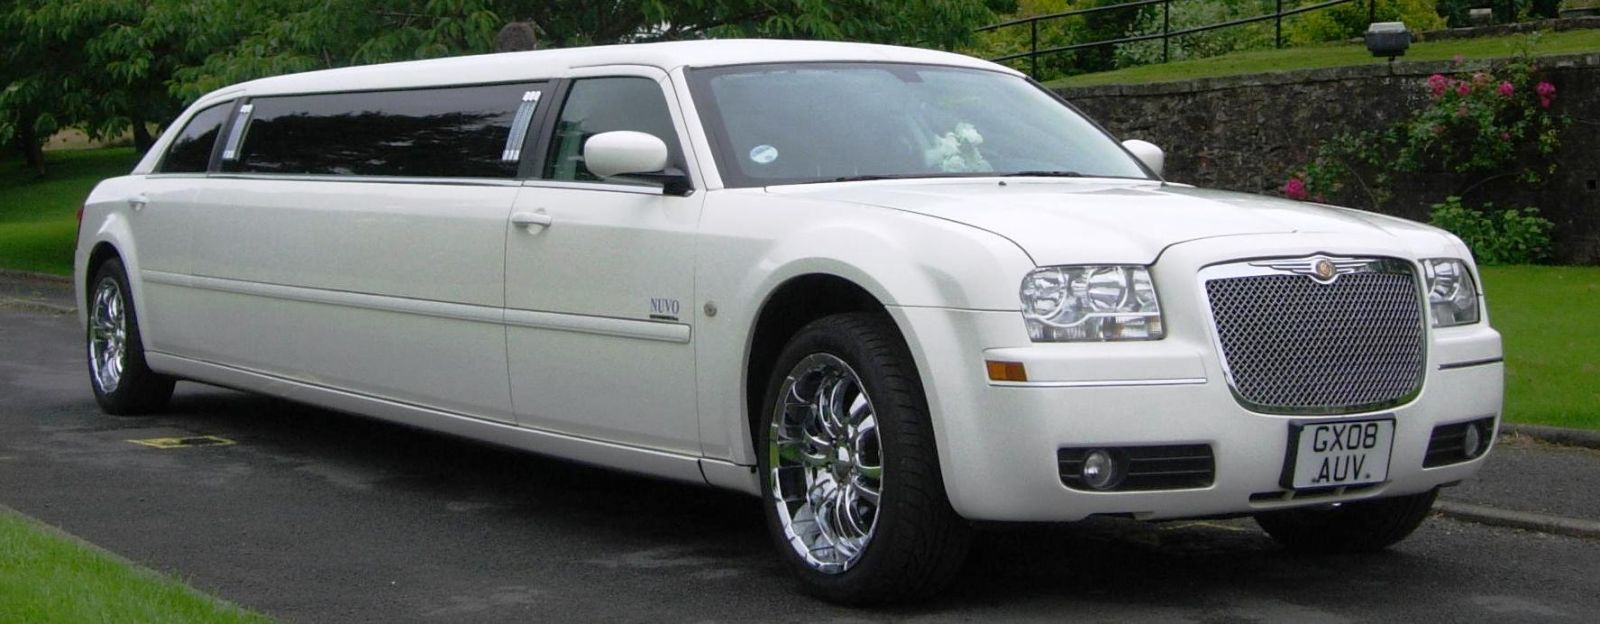 Sports Car Rental For Prom In Maryland